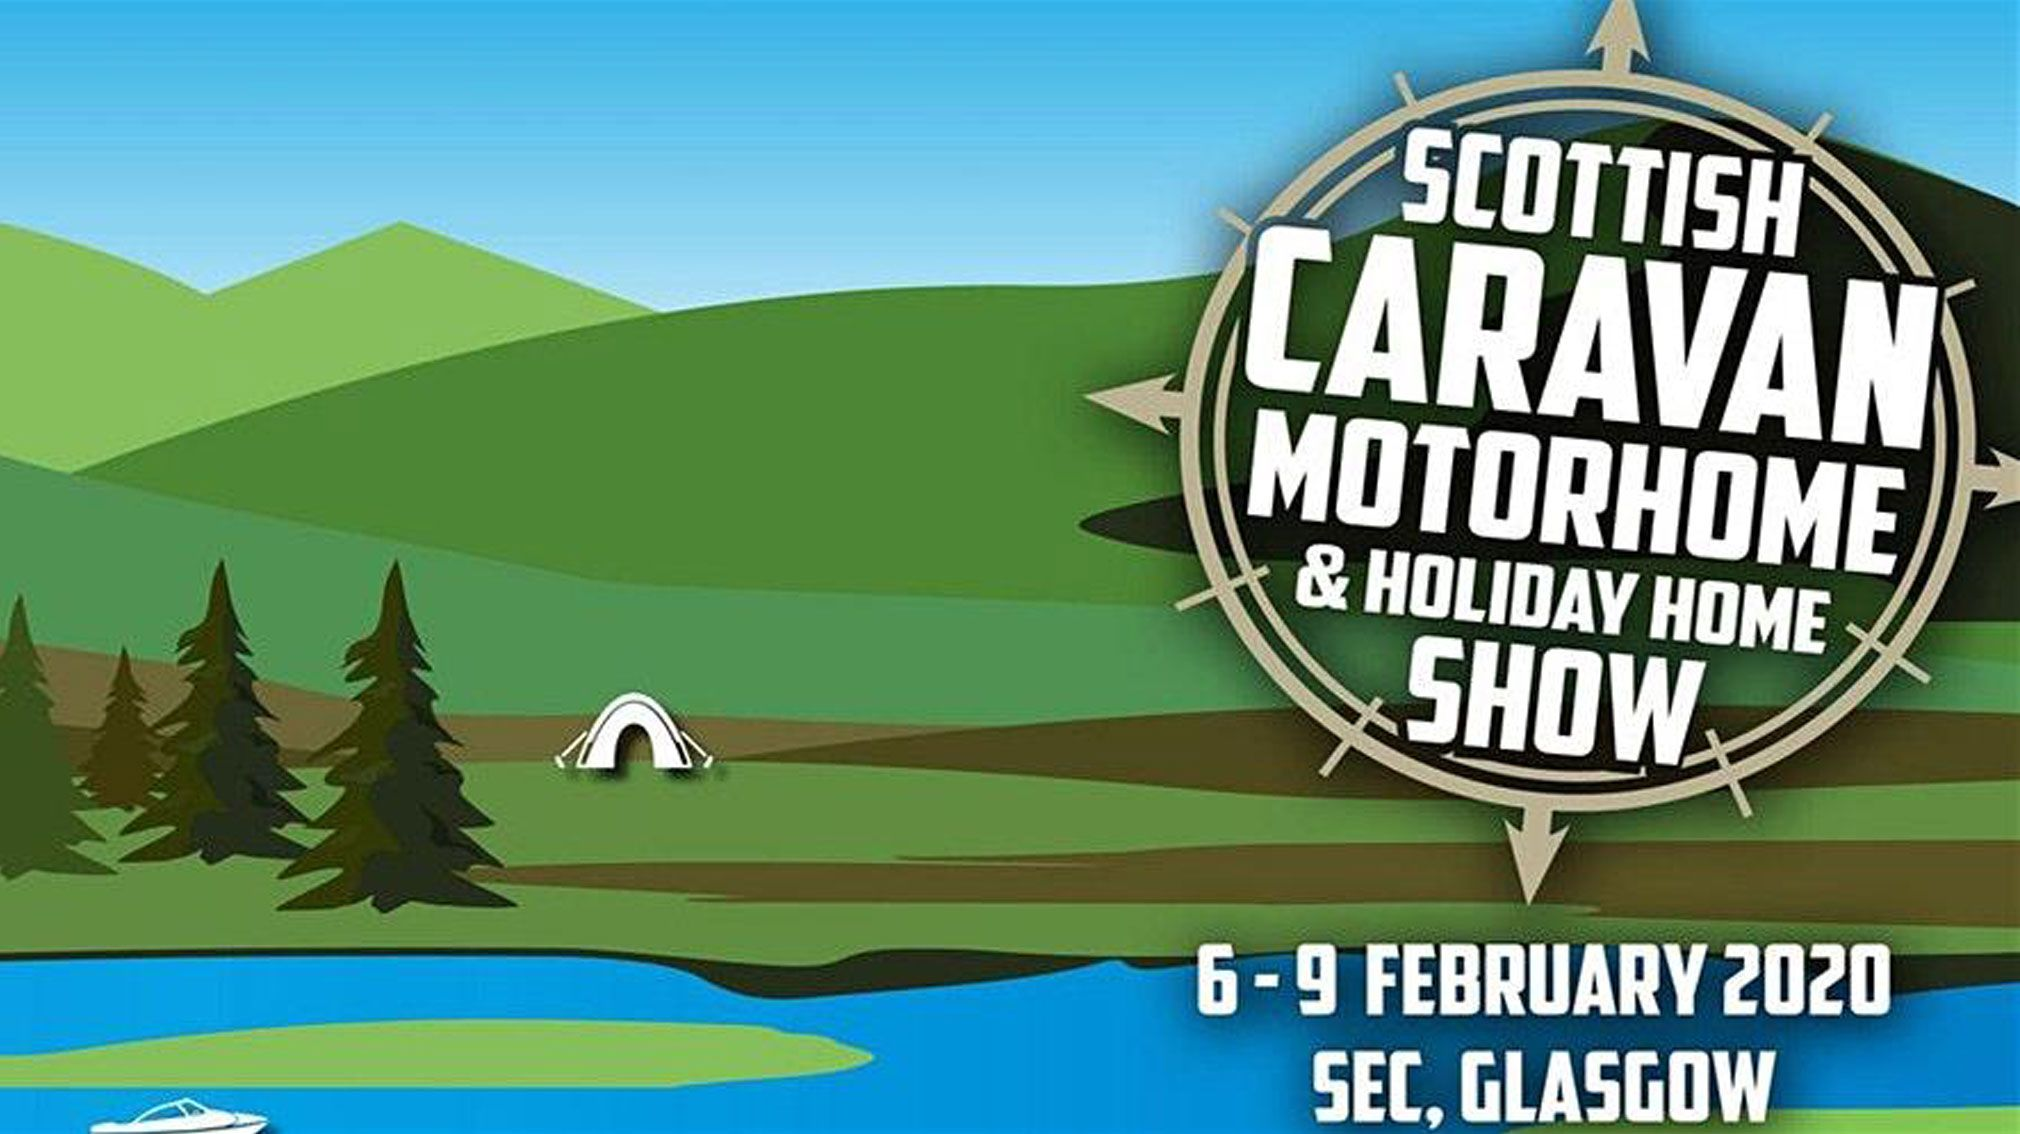 Scottish Caravan Motorhome and Holiday Home Show 2020